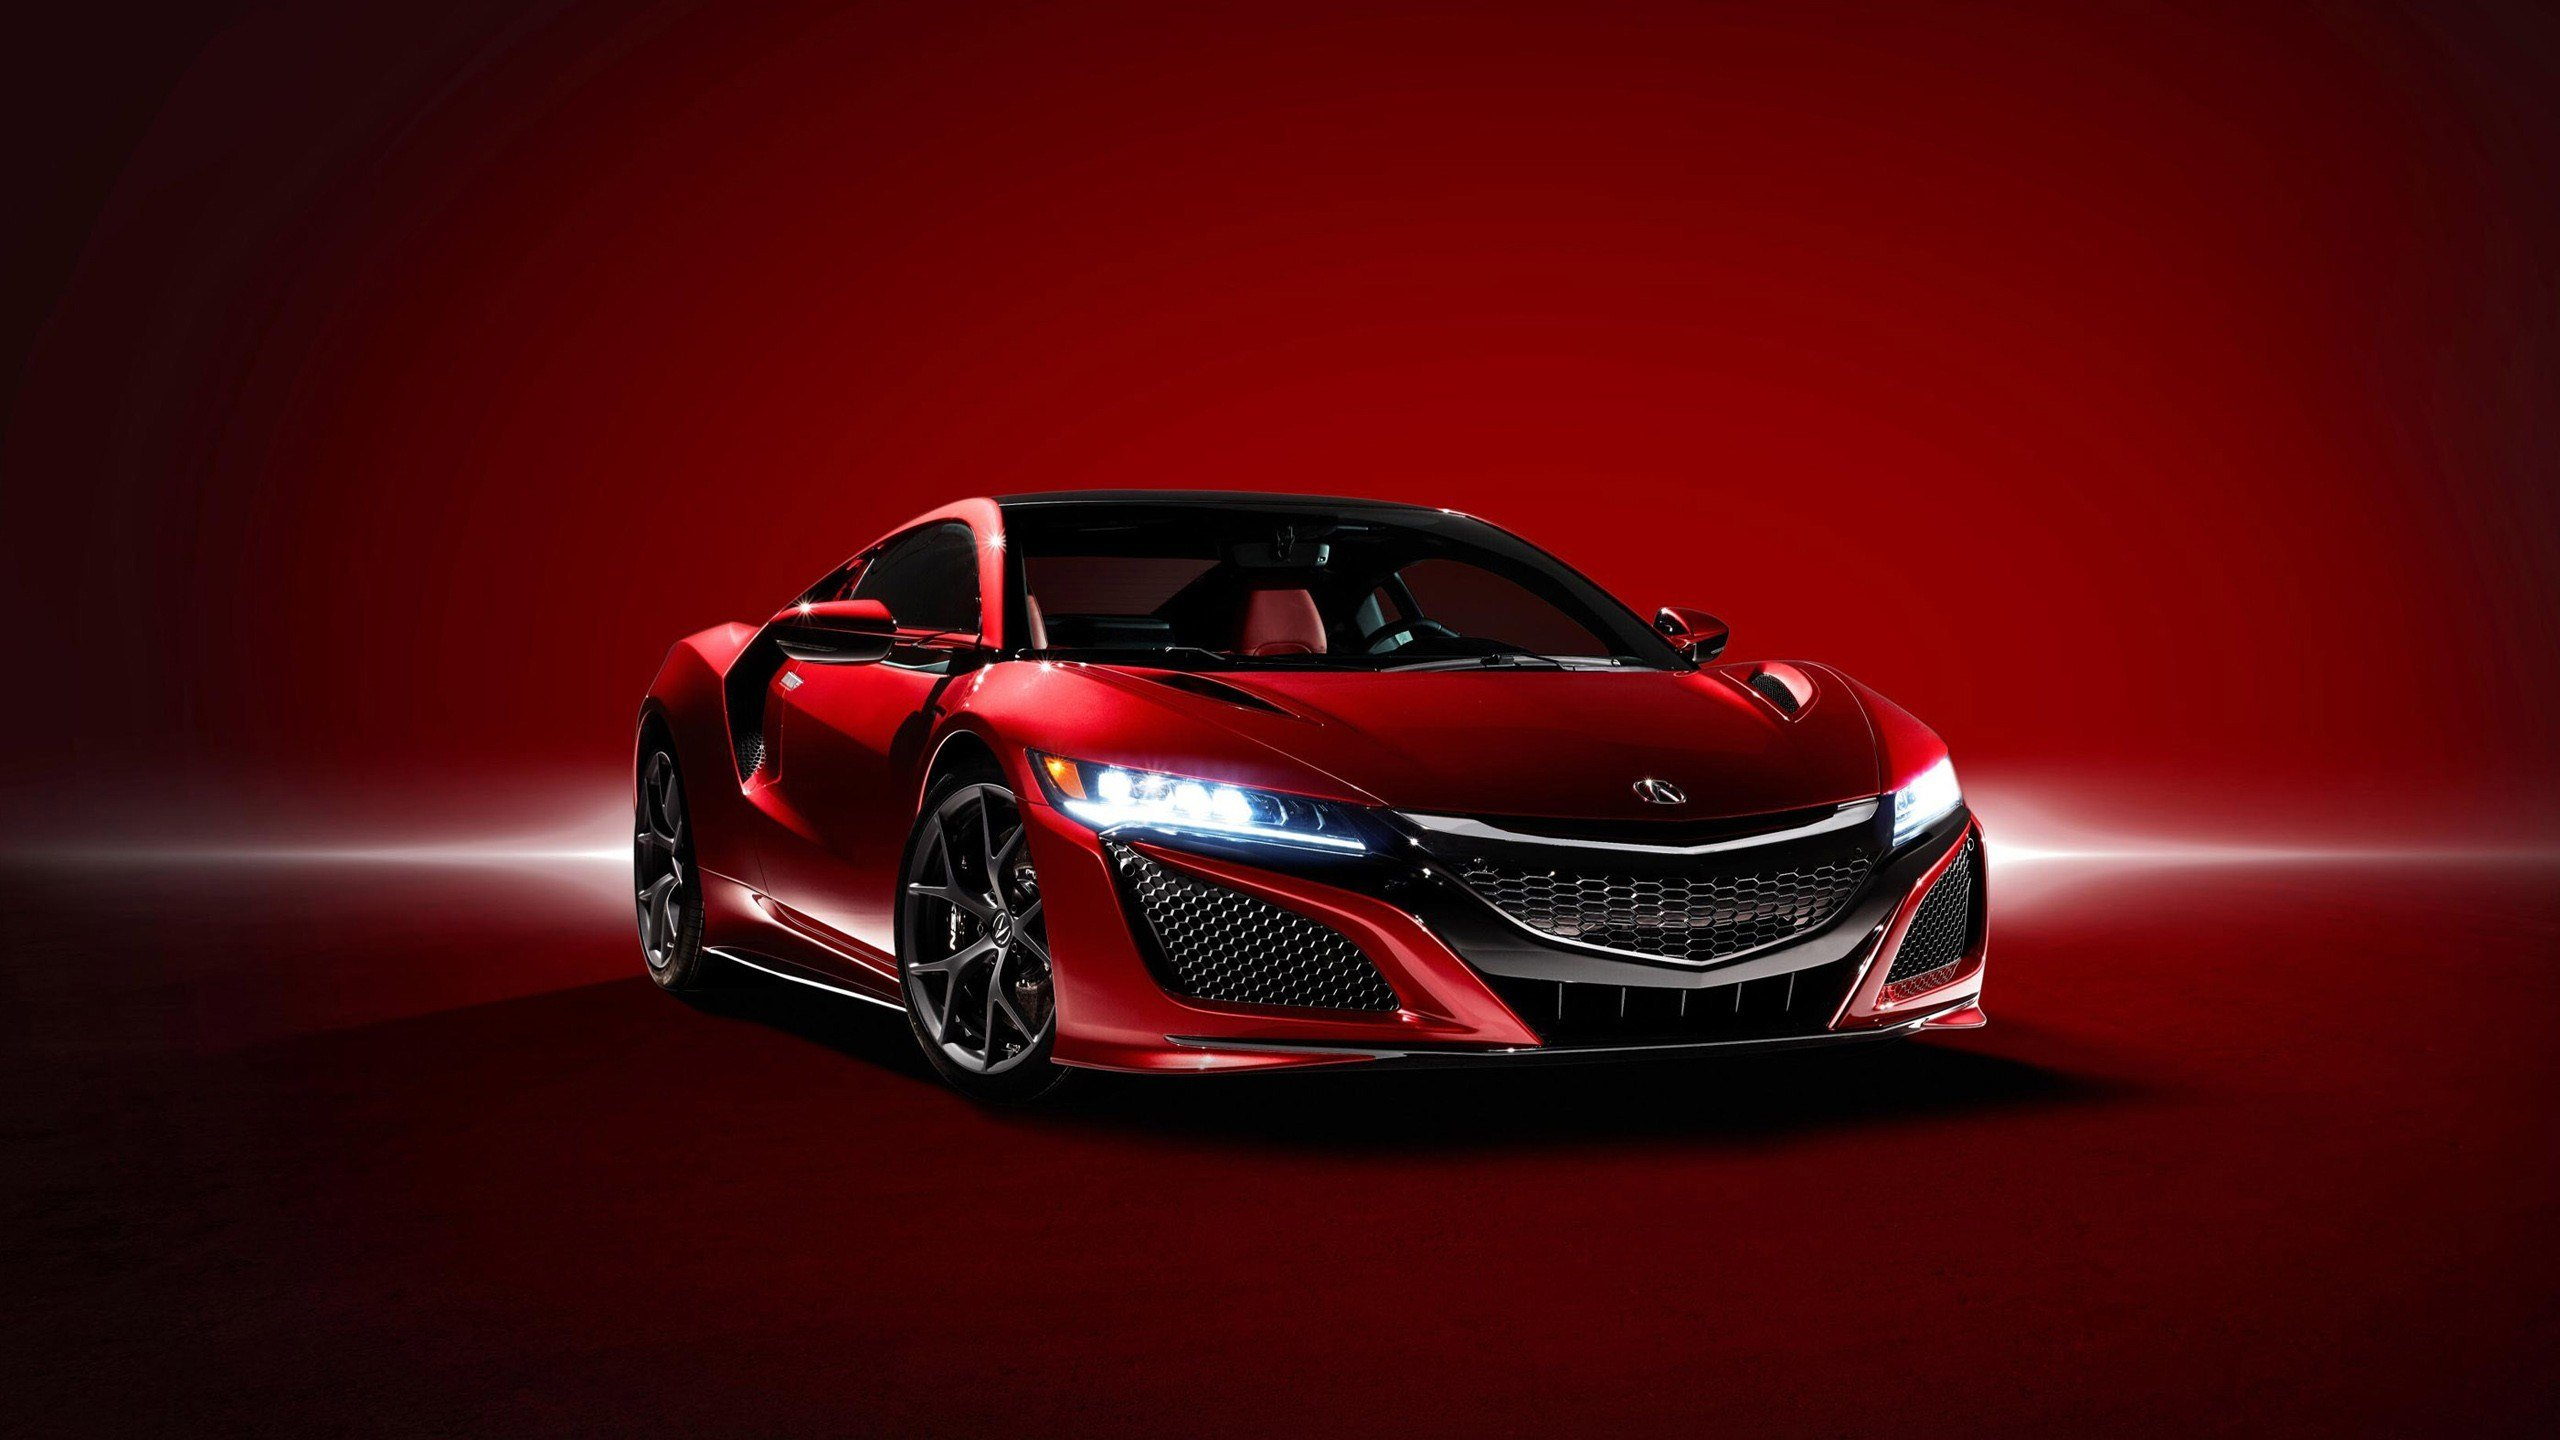 Latest 2016 Acura Nsx Supercar Wallpapers Hd Wallpapers Id 14555 Free Download